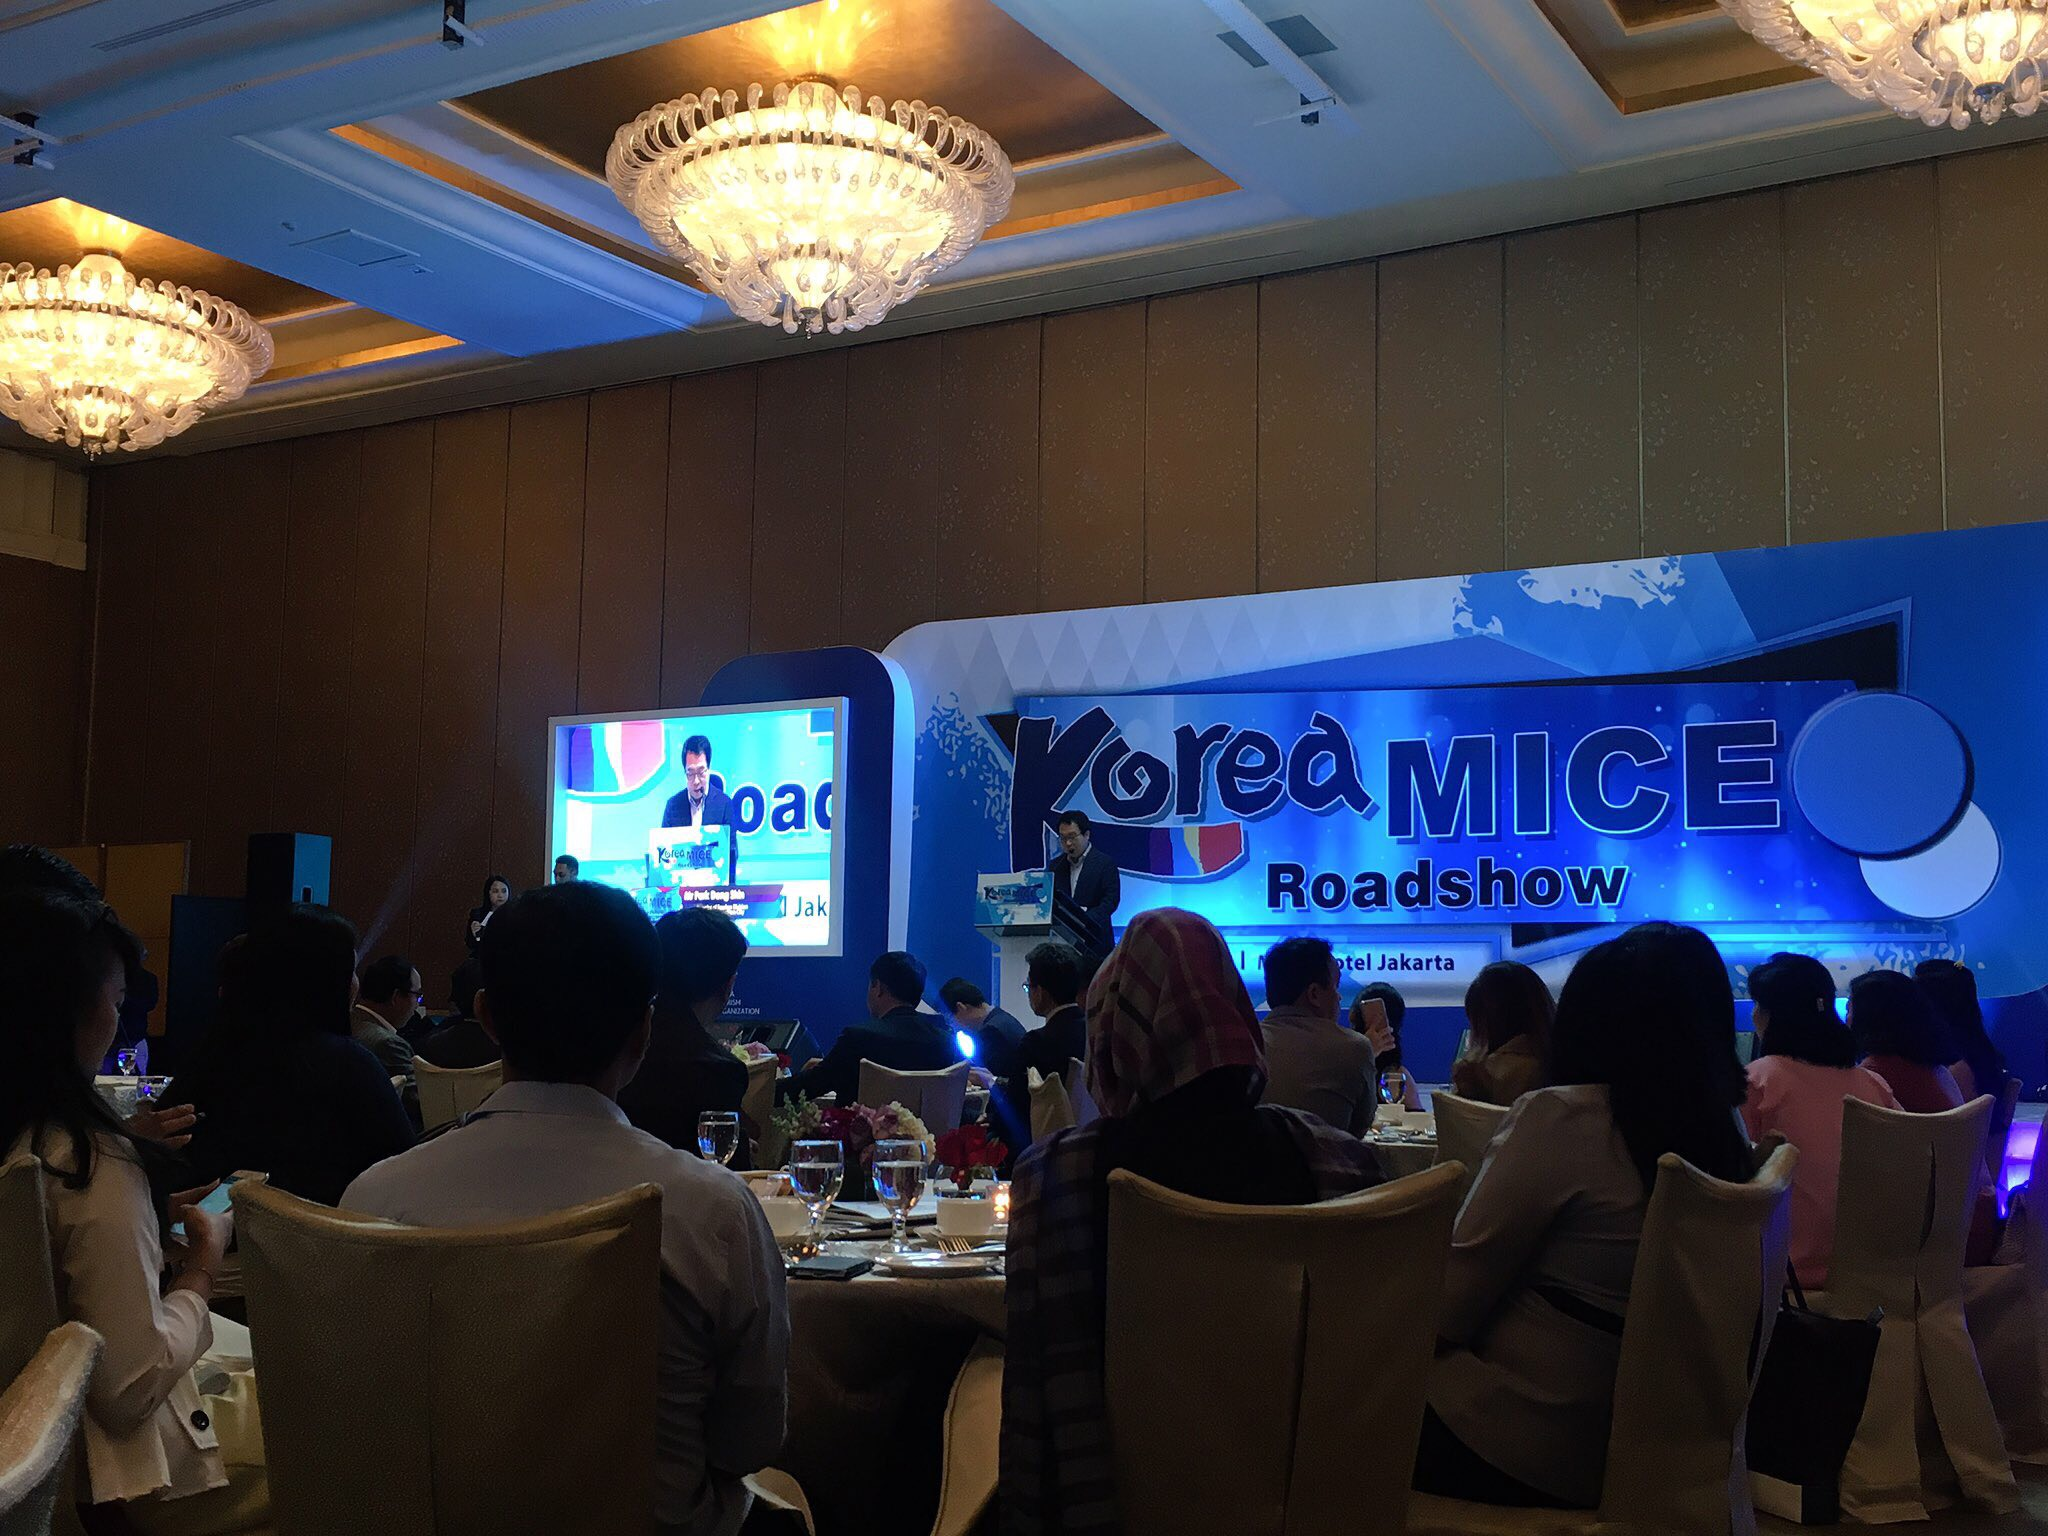 Korea MICE Roadshow